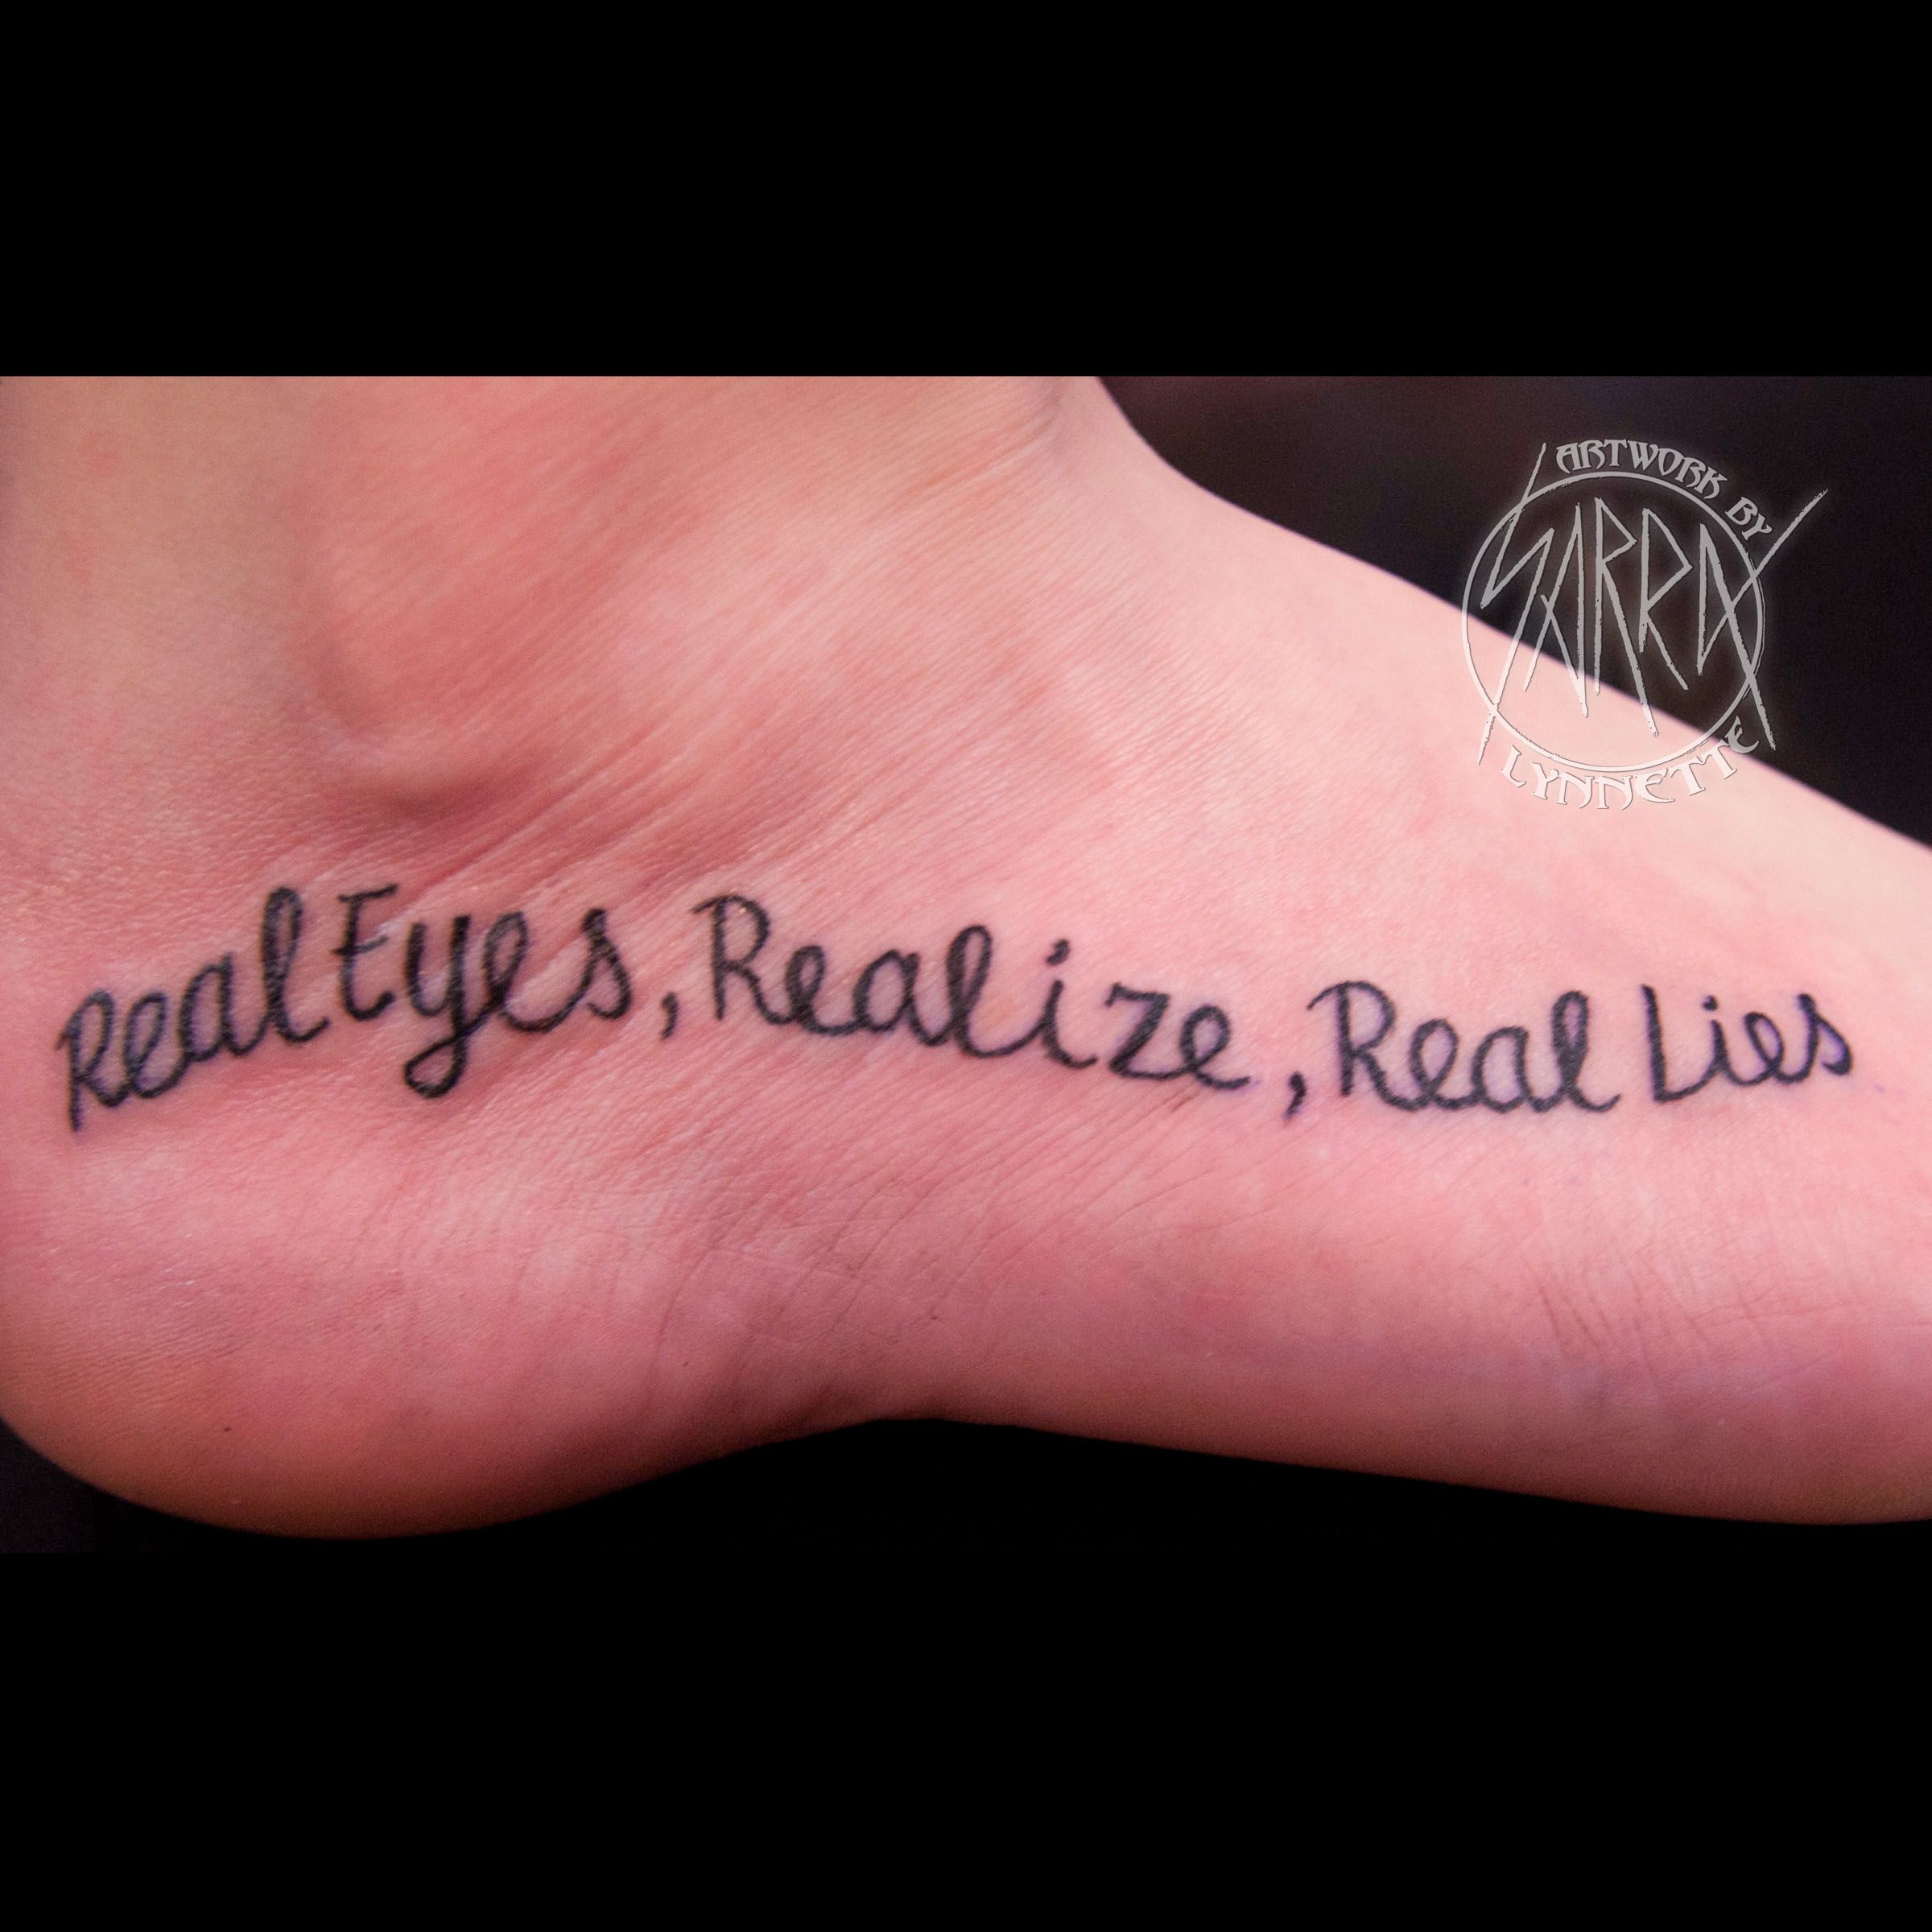 Pin lovi poe for tattoo pictures to pin on pinterest on pinterest - Tupac Lyrics Tattoo By Sarra Lynnette Love This Tatt Find This Pin